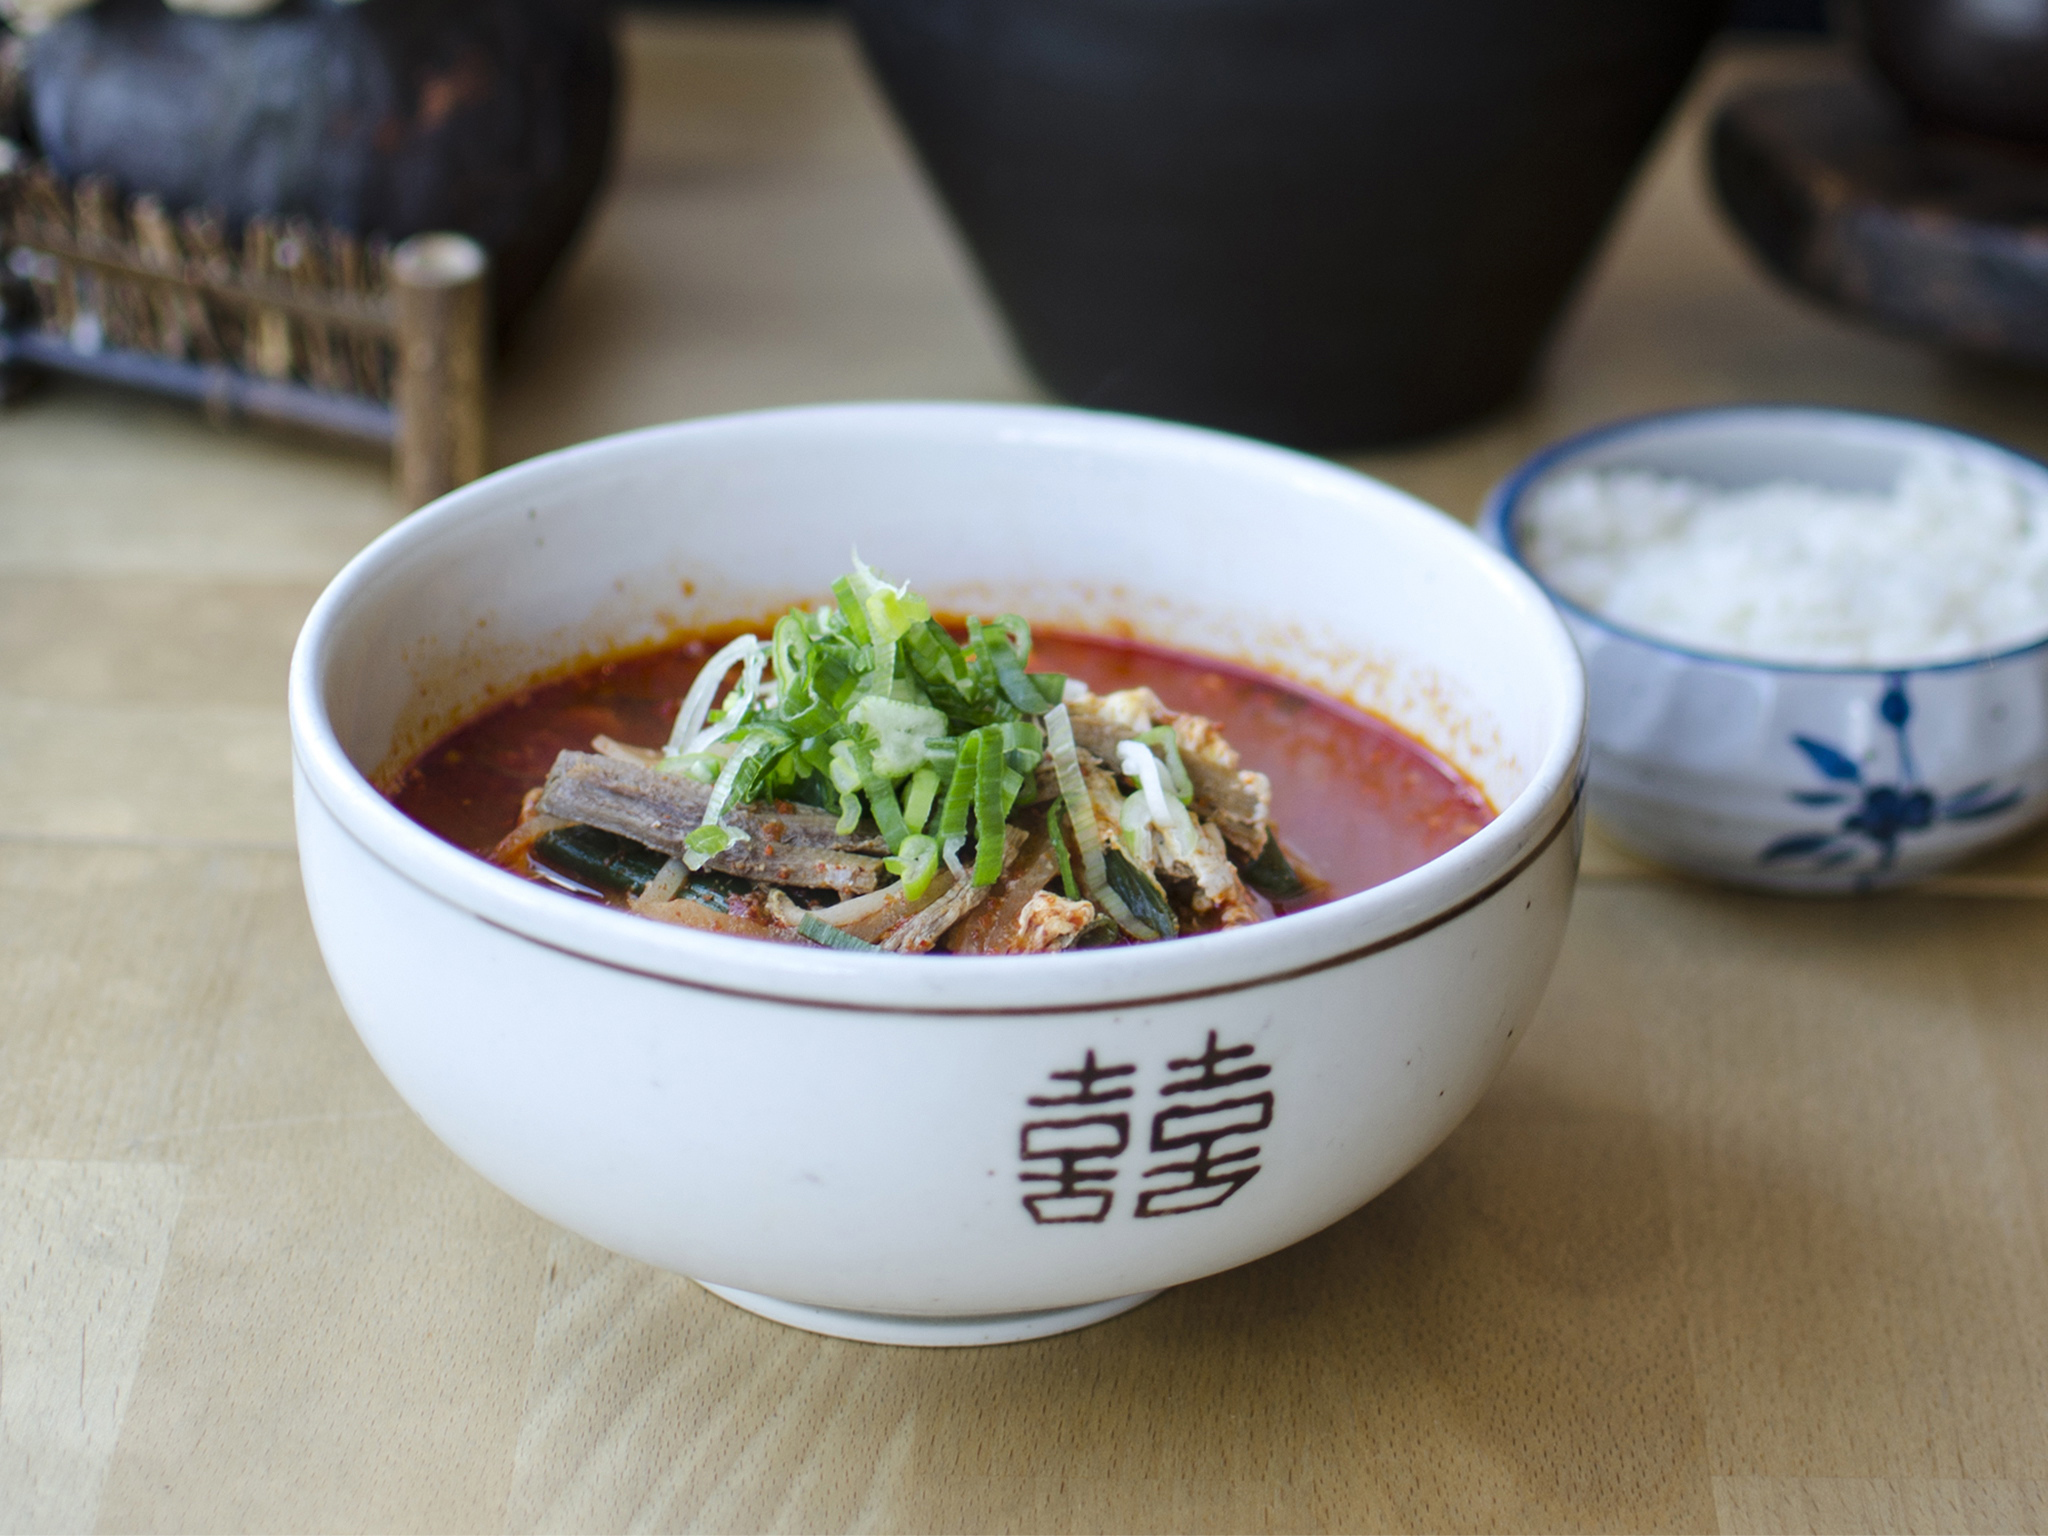 London's hottest dishes, Yukgejang at Dotori